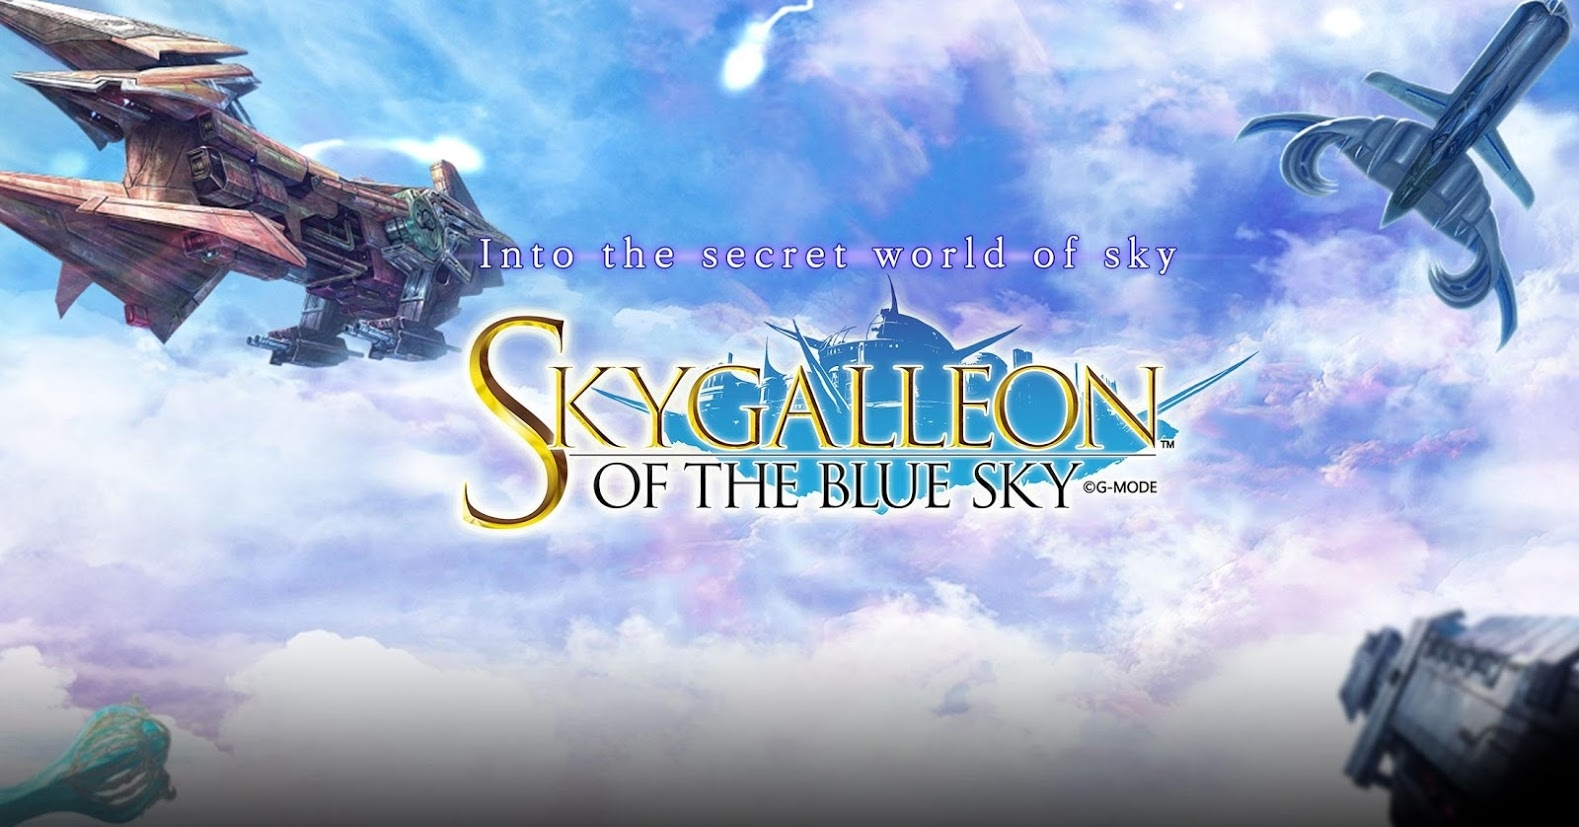 Skygalleon of the Blue Sky 2842020 1